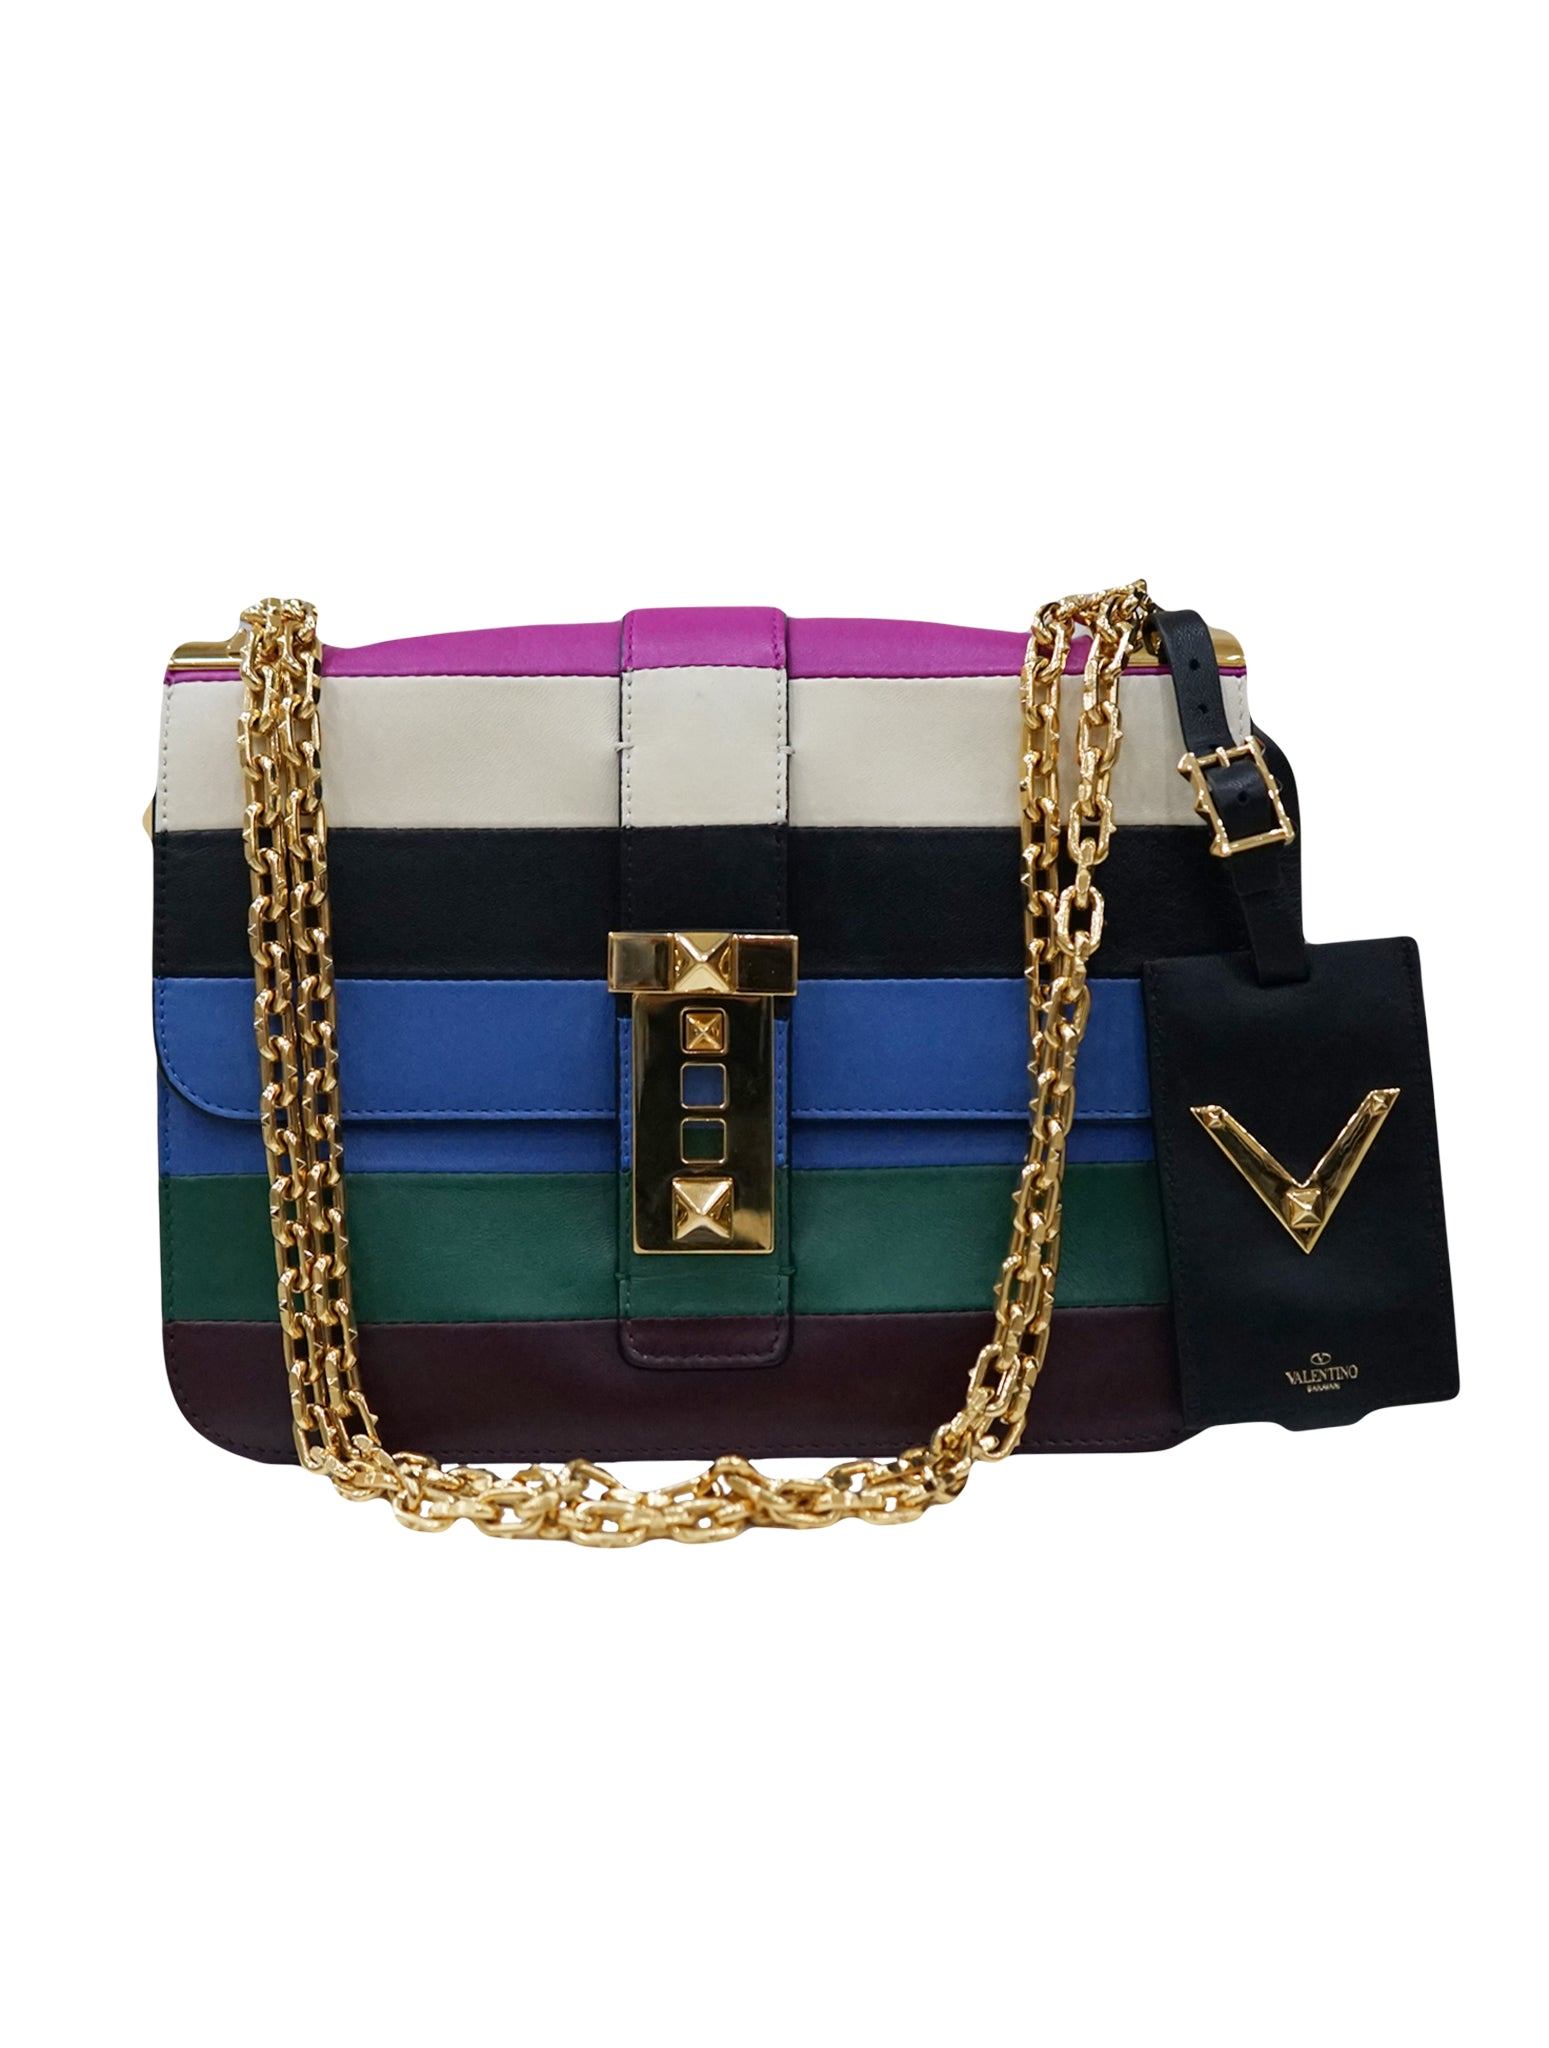 VALENTINO B ROCKSTUD COLOR BLOCK LEATHER BAG – Kidsstyleforless a6355b7ac6